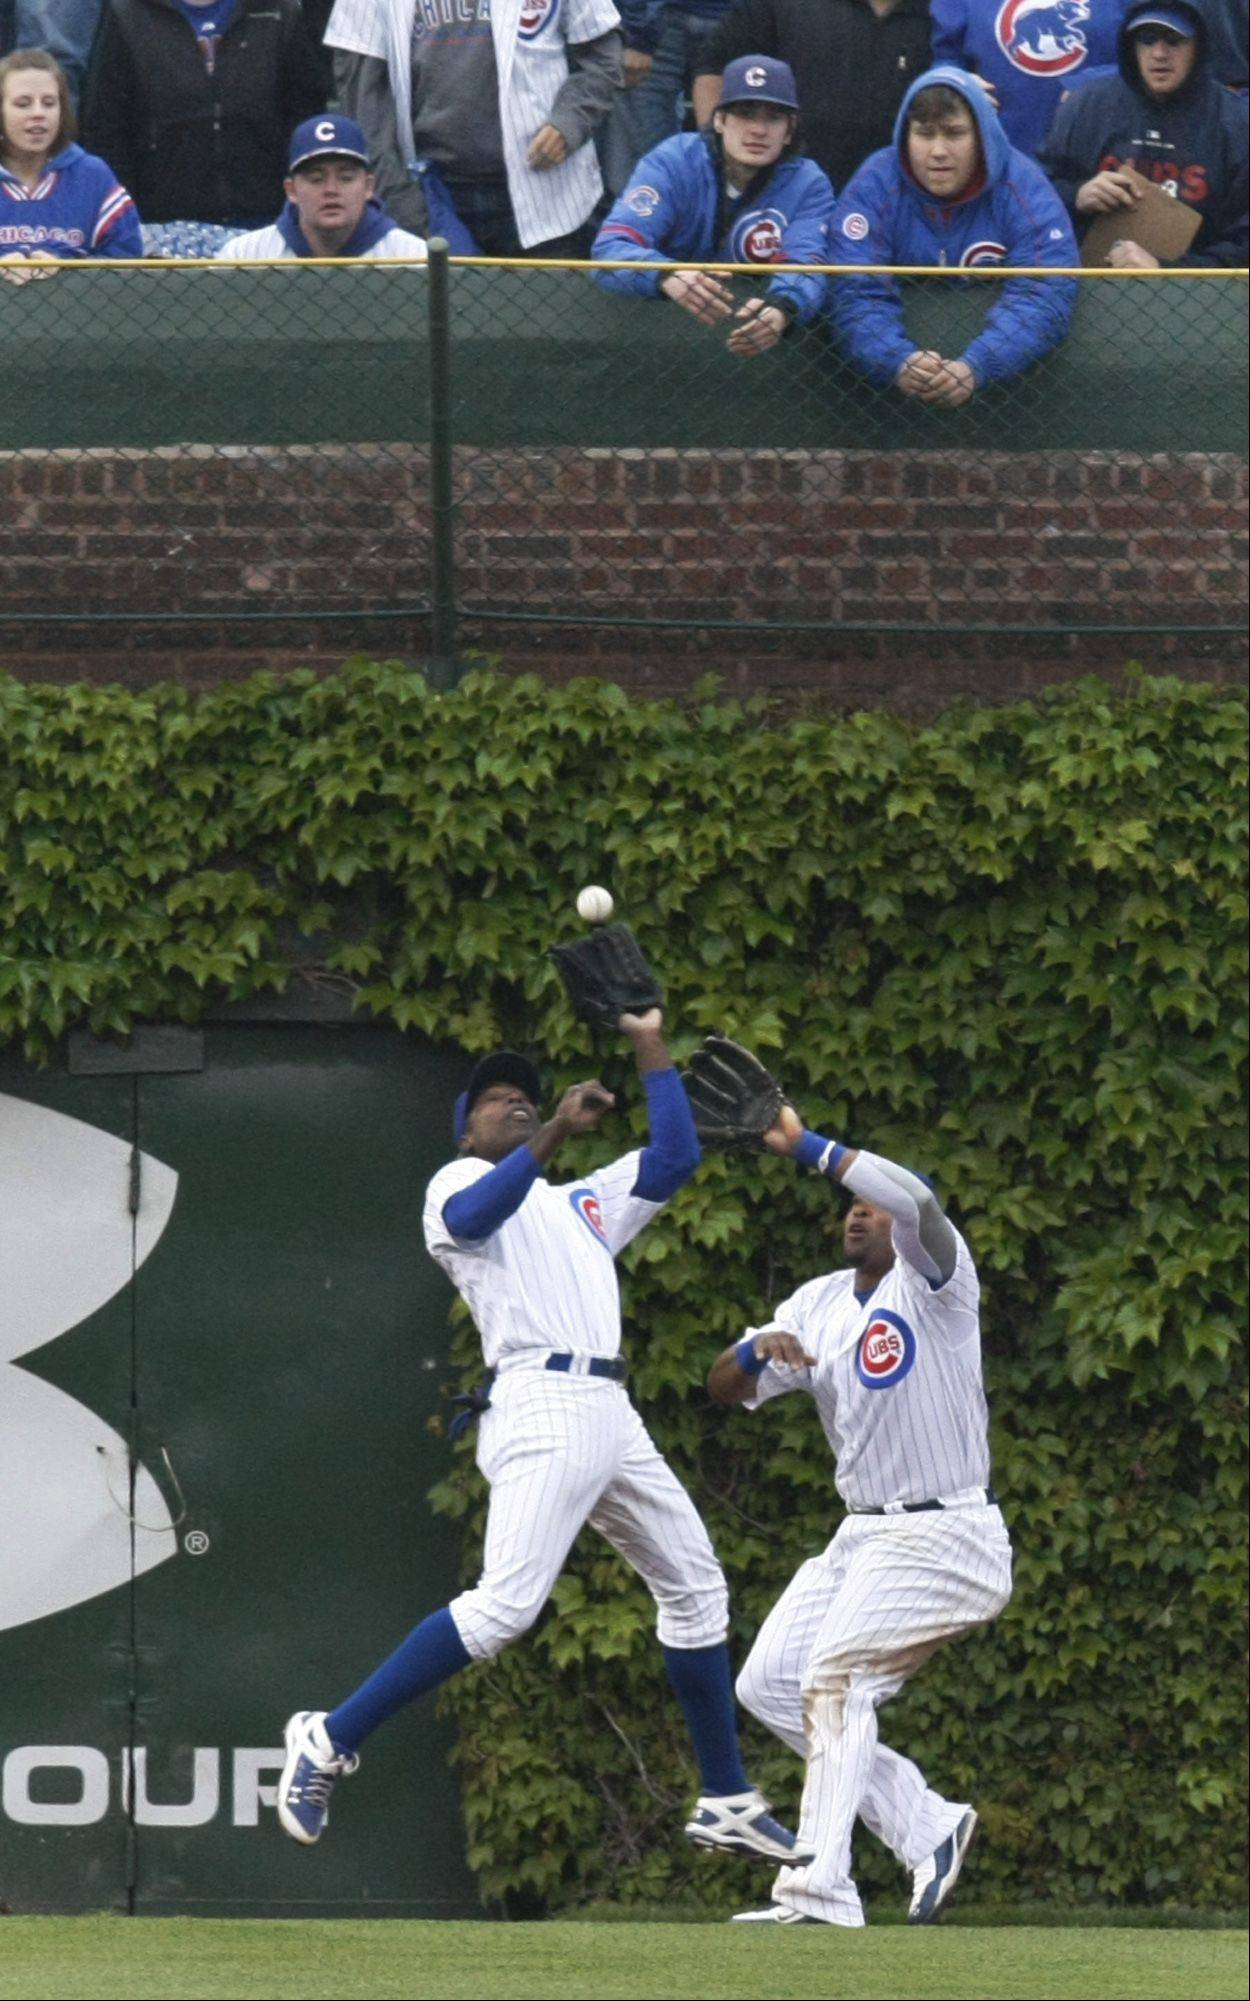 Cubs left fielder Alfonso Soriano, left, leaps in front of center fielder Marlon Byrd to catch a long fly ball by Florida Marlins' Ronny Paulino to end the top half of the sixth inning of a baseball game Wednesday, May 12, 2010 at Wrigley Field in Chicago.